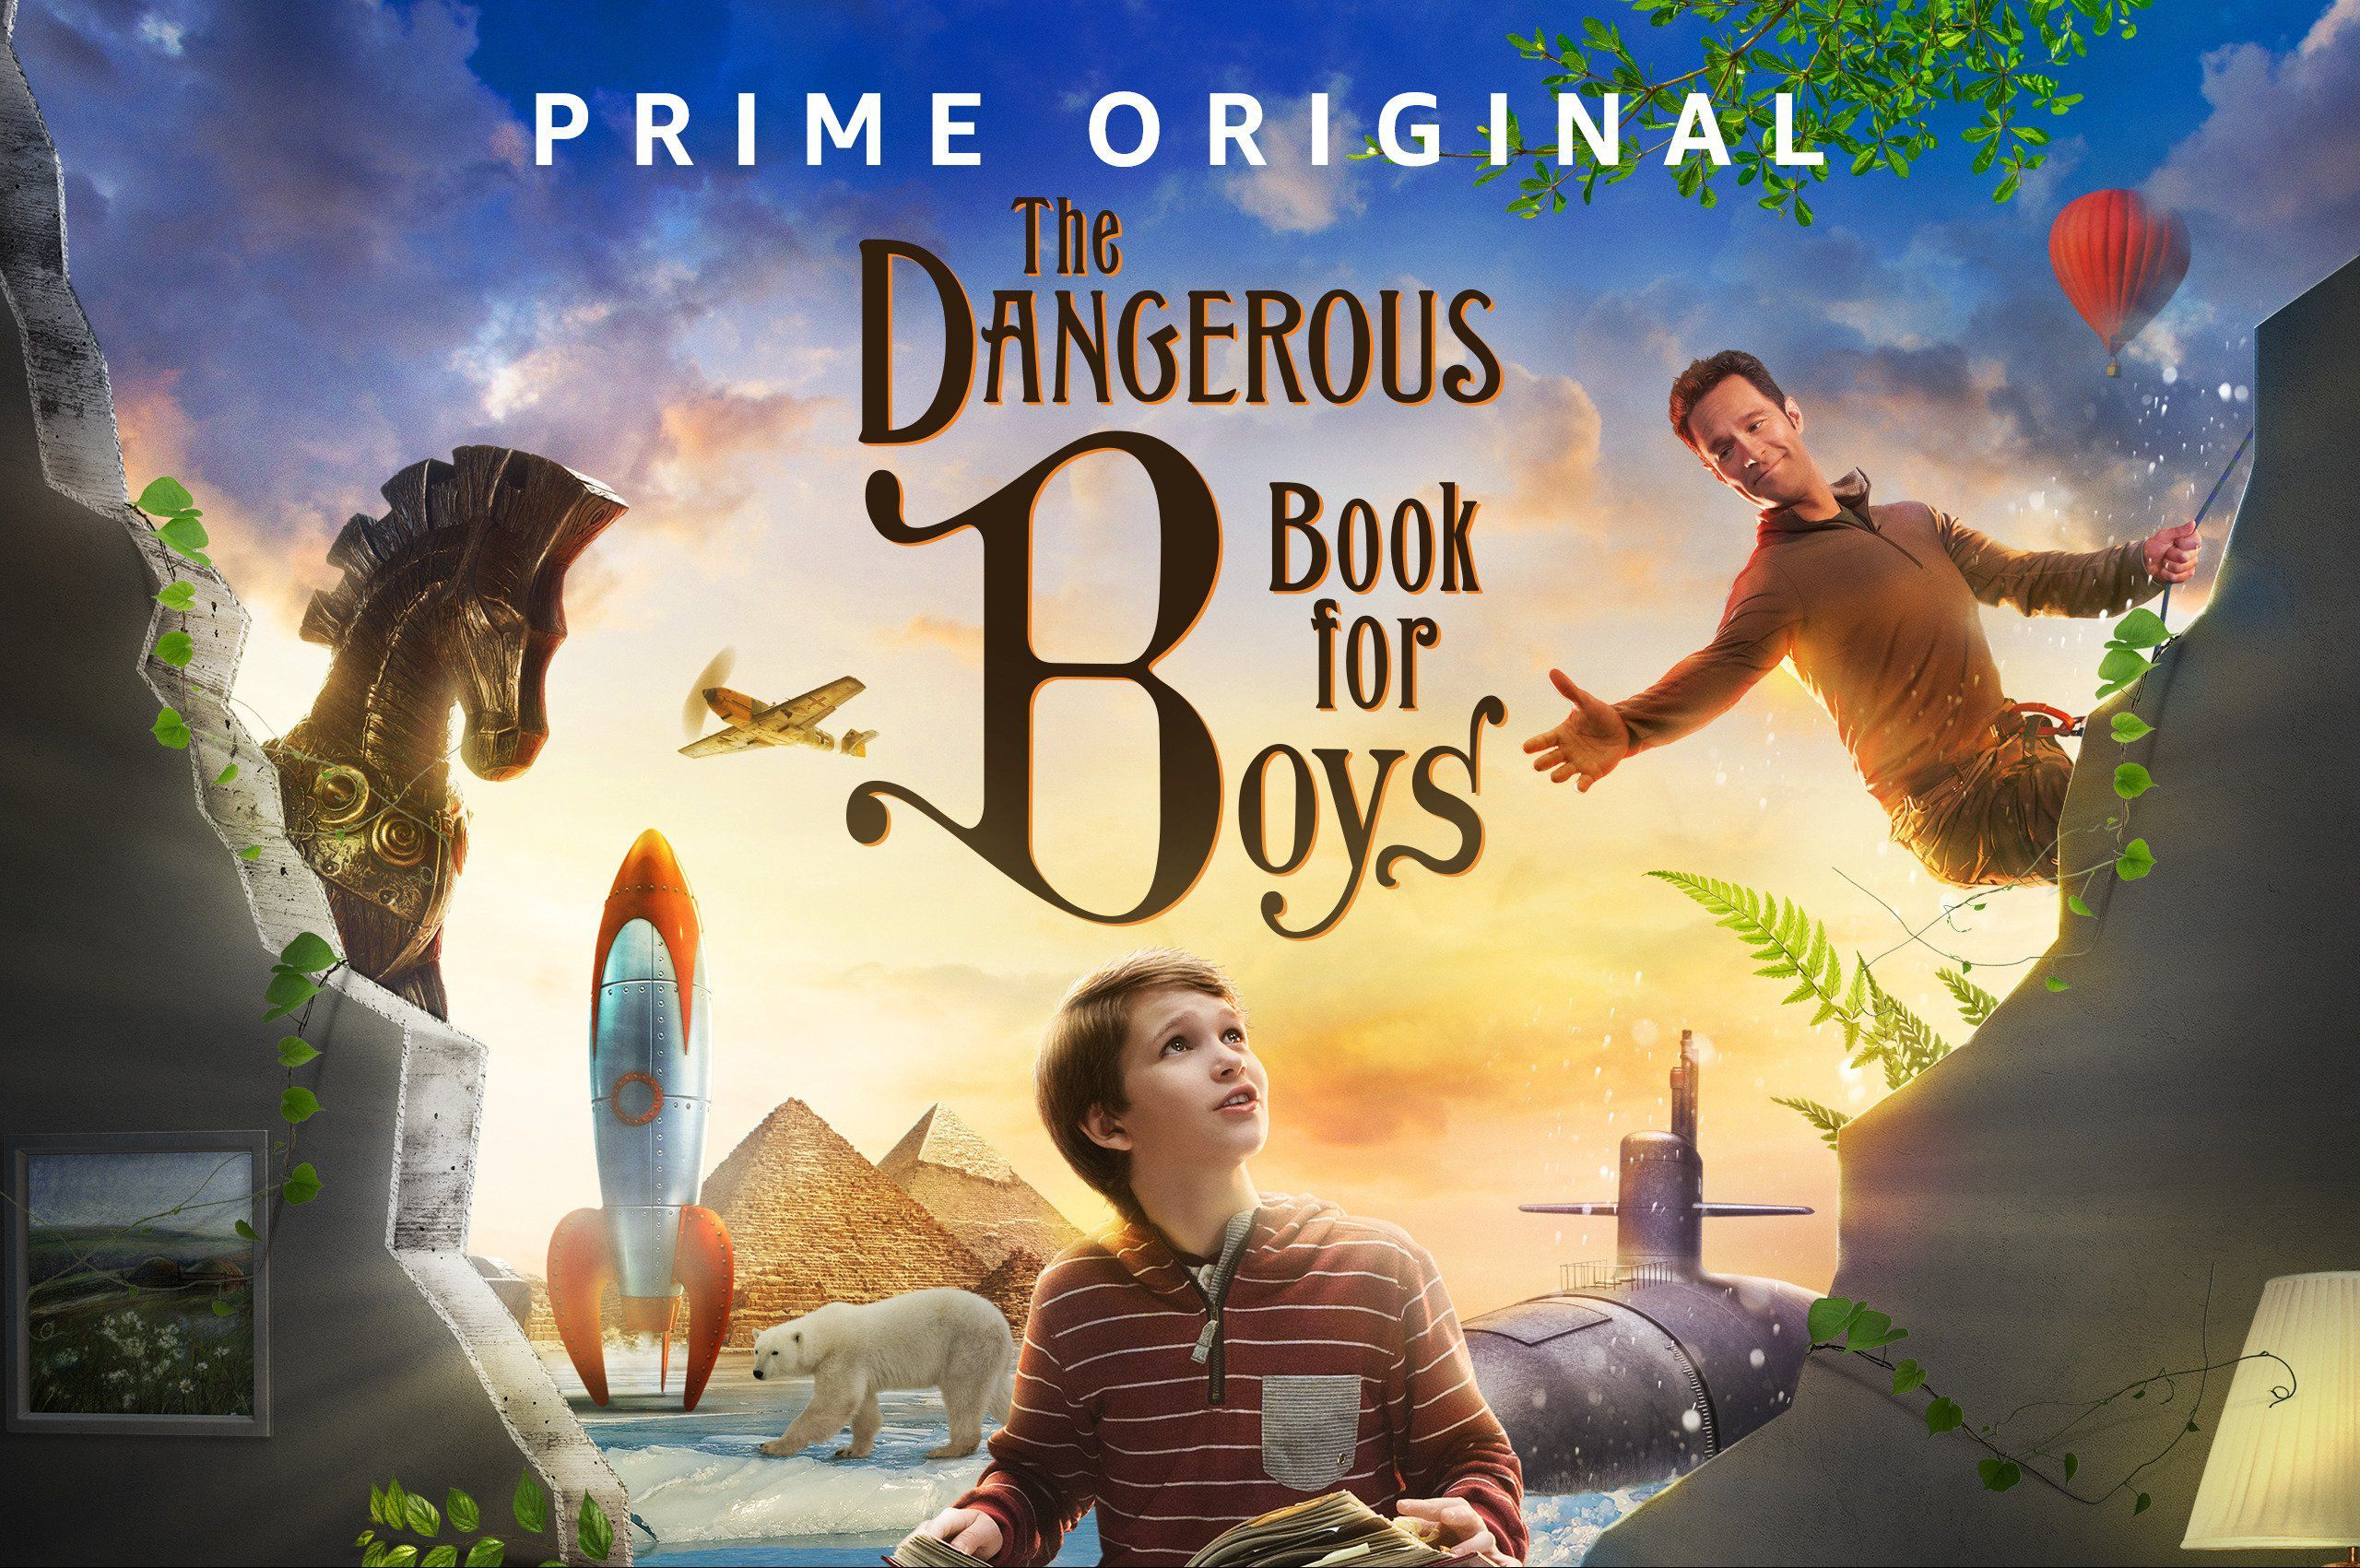 The Dangerous Book for Boys - Amazon Studios Prime series 2018